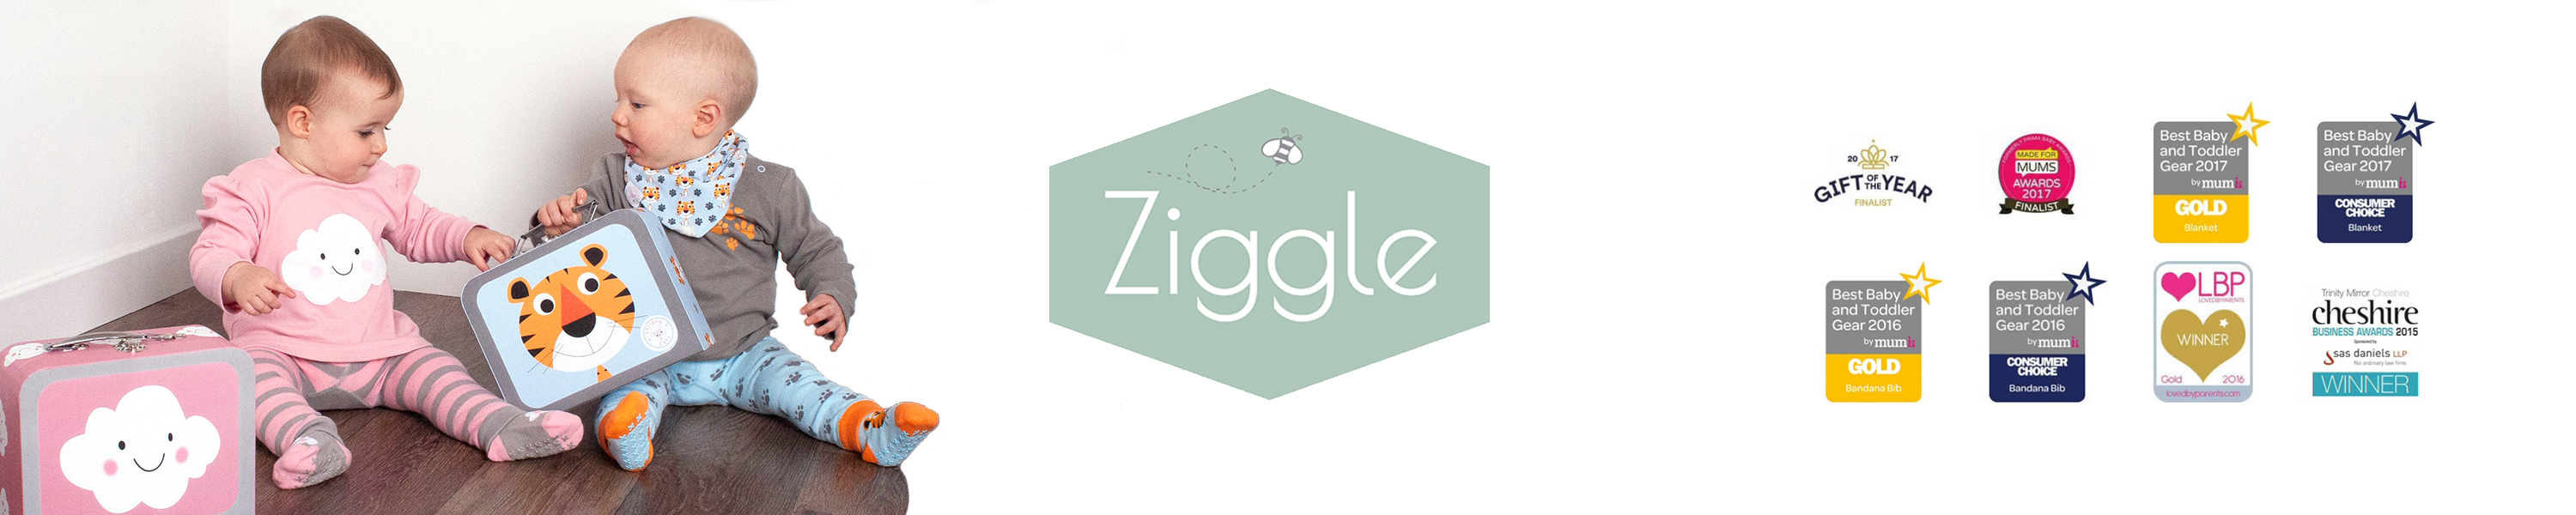 Ziggle Baby Gift Box Set Of 4 Pairs of Soft Comfy Stay Up Cotton Rich Socks To Match Dino And Stars Bibs